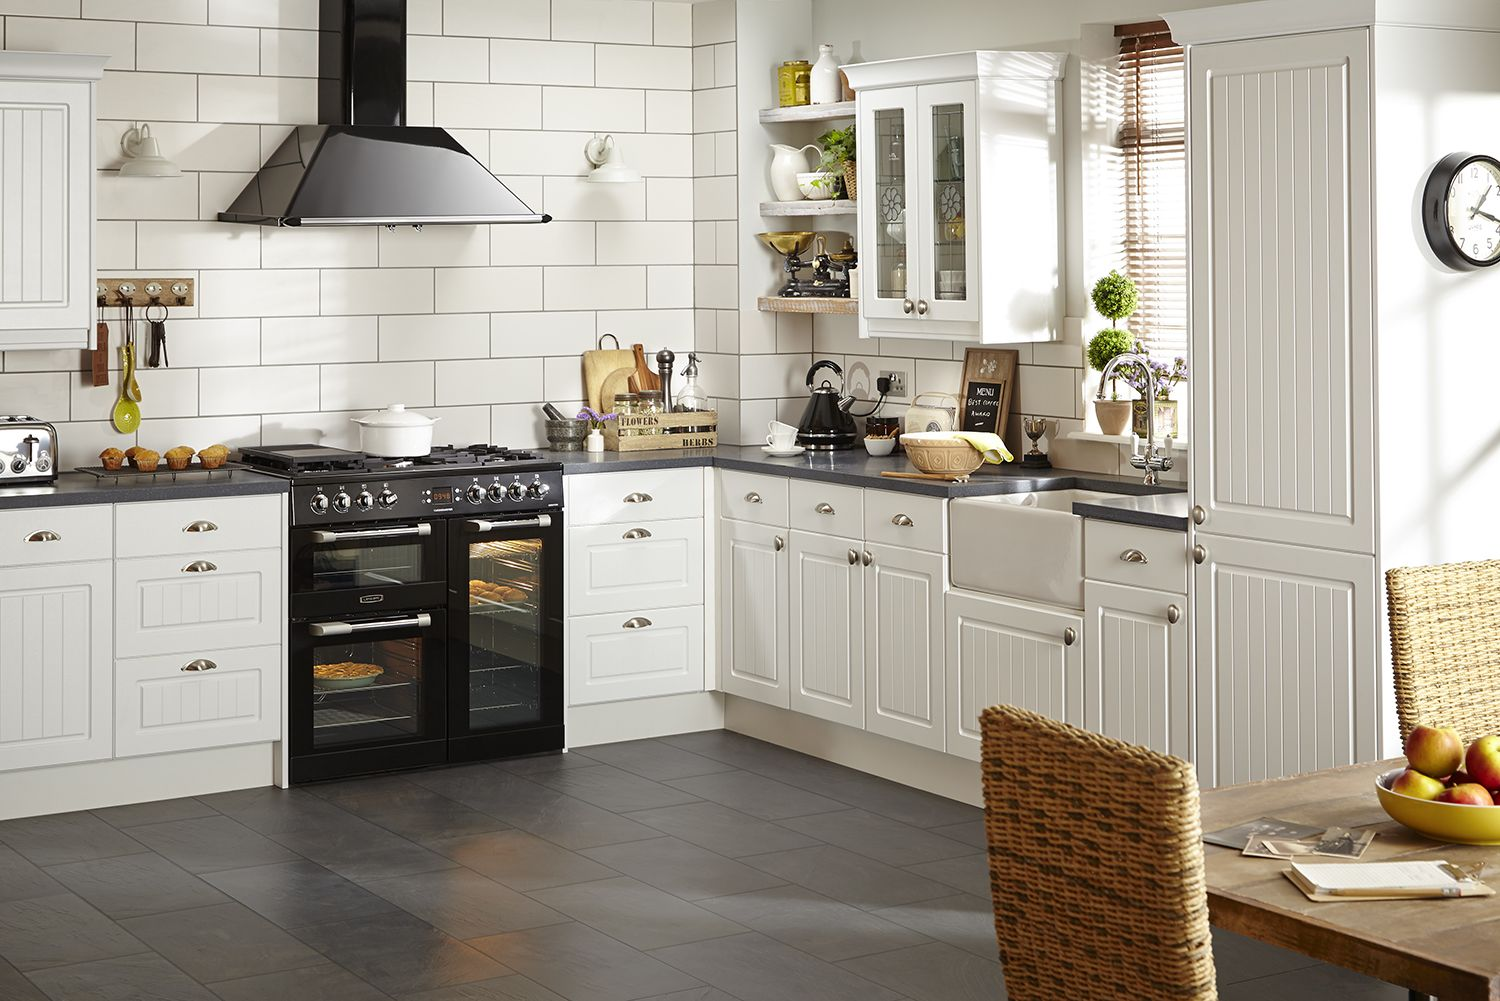 Combining bold, graphic black appliances and worktops with white kitchen  units brings country style kitchens